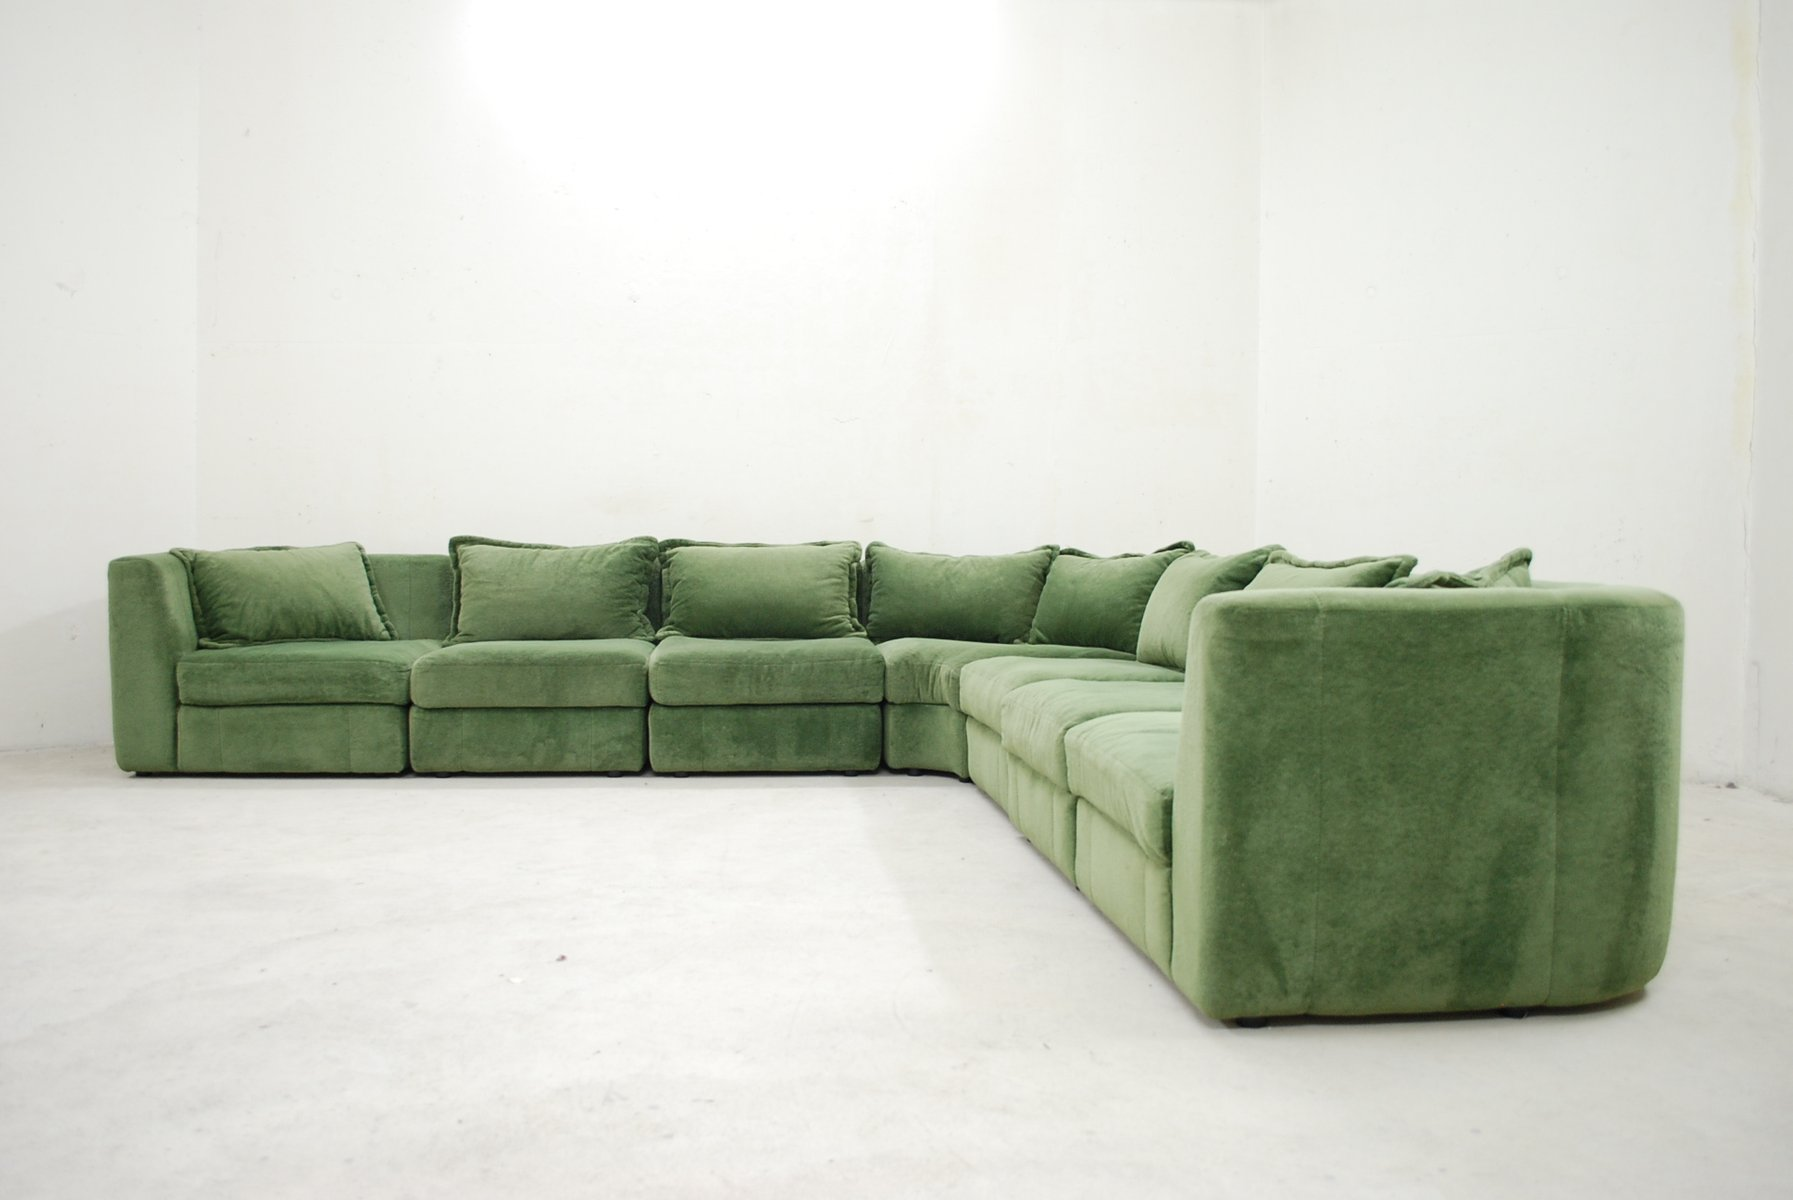 Vintage Green Modular Sofa From Rolf Benz For Sale At Pamono